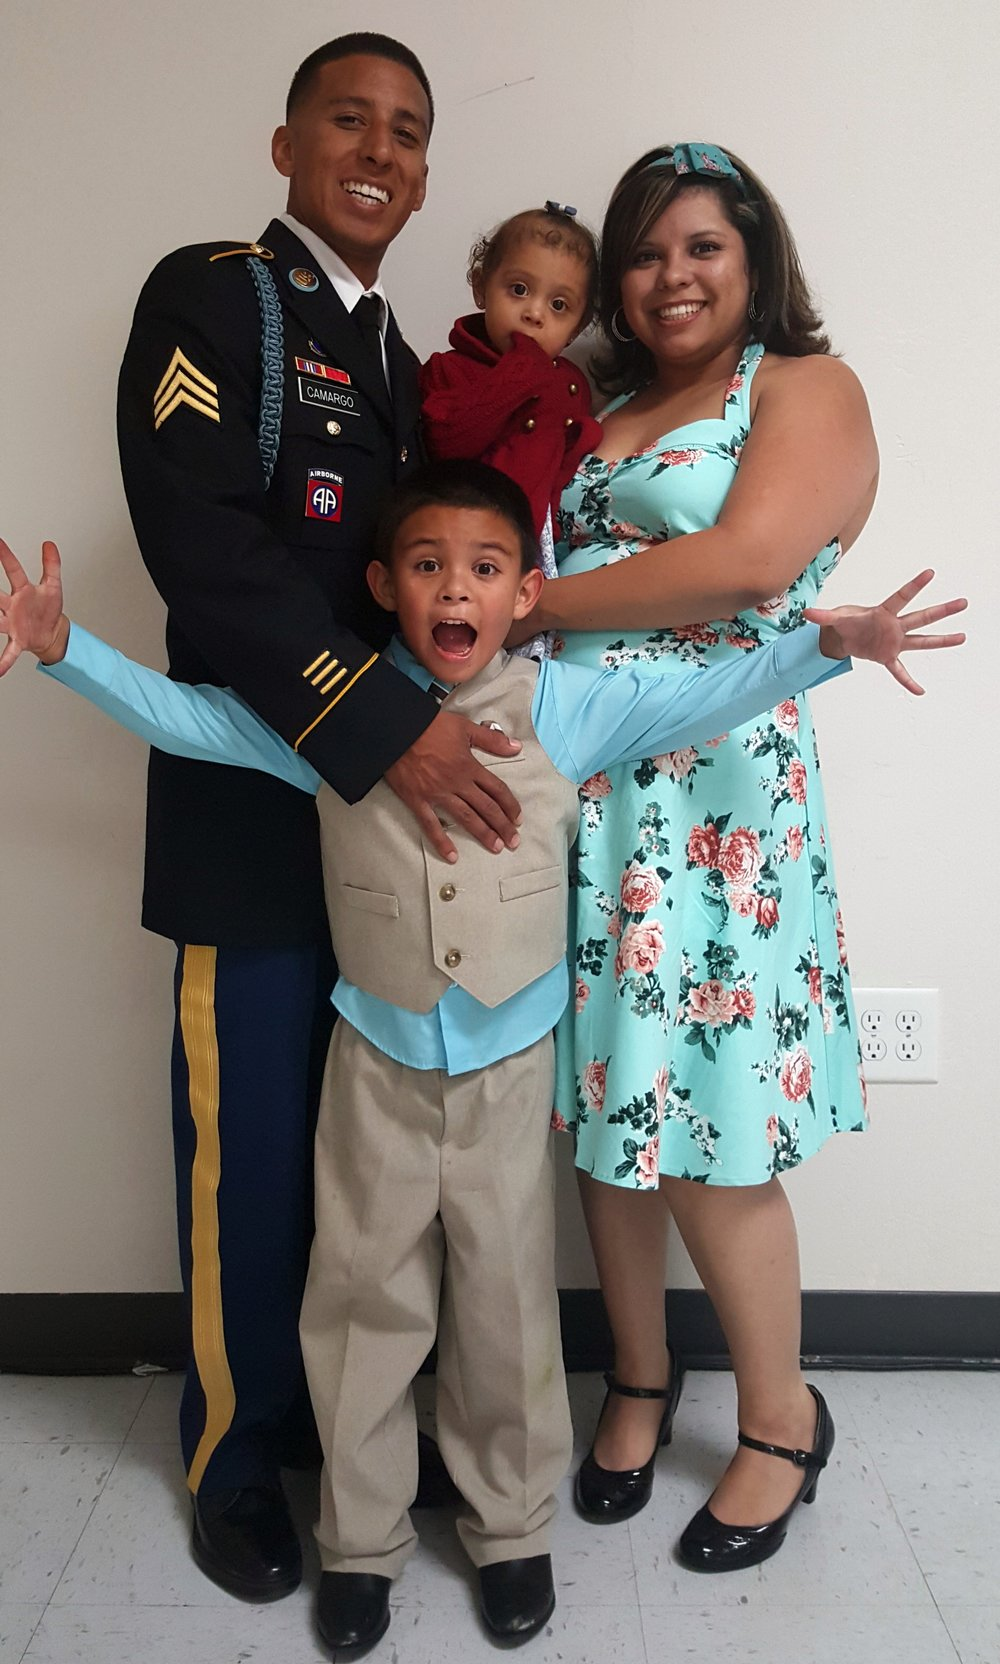 """""""2015 was a hell of a year,""""   said Camargo, """"I don't know what we would have done if we hadn't found out about the California Military Department Foundation."""" [When] it seemed like everything that could go wrong was going wrong … the Foundation was there to help sustain us."""""""